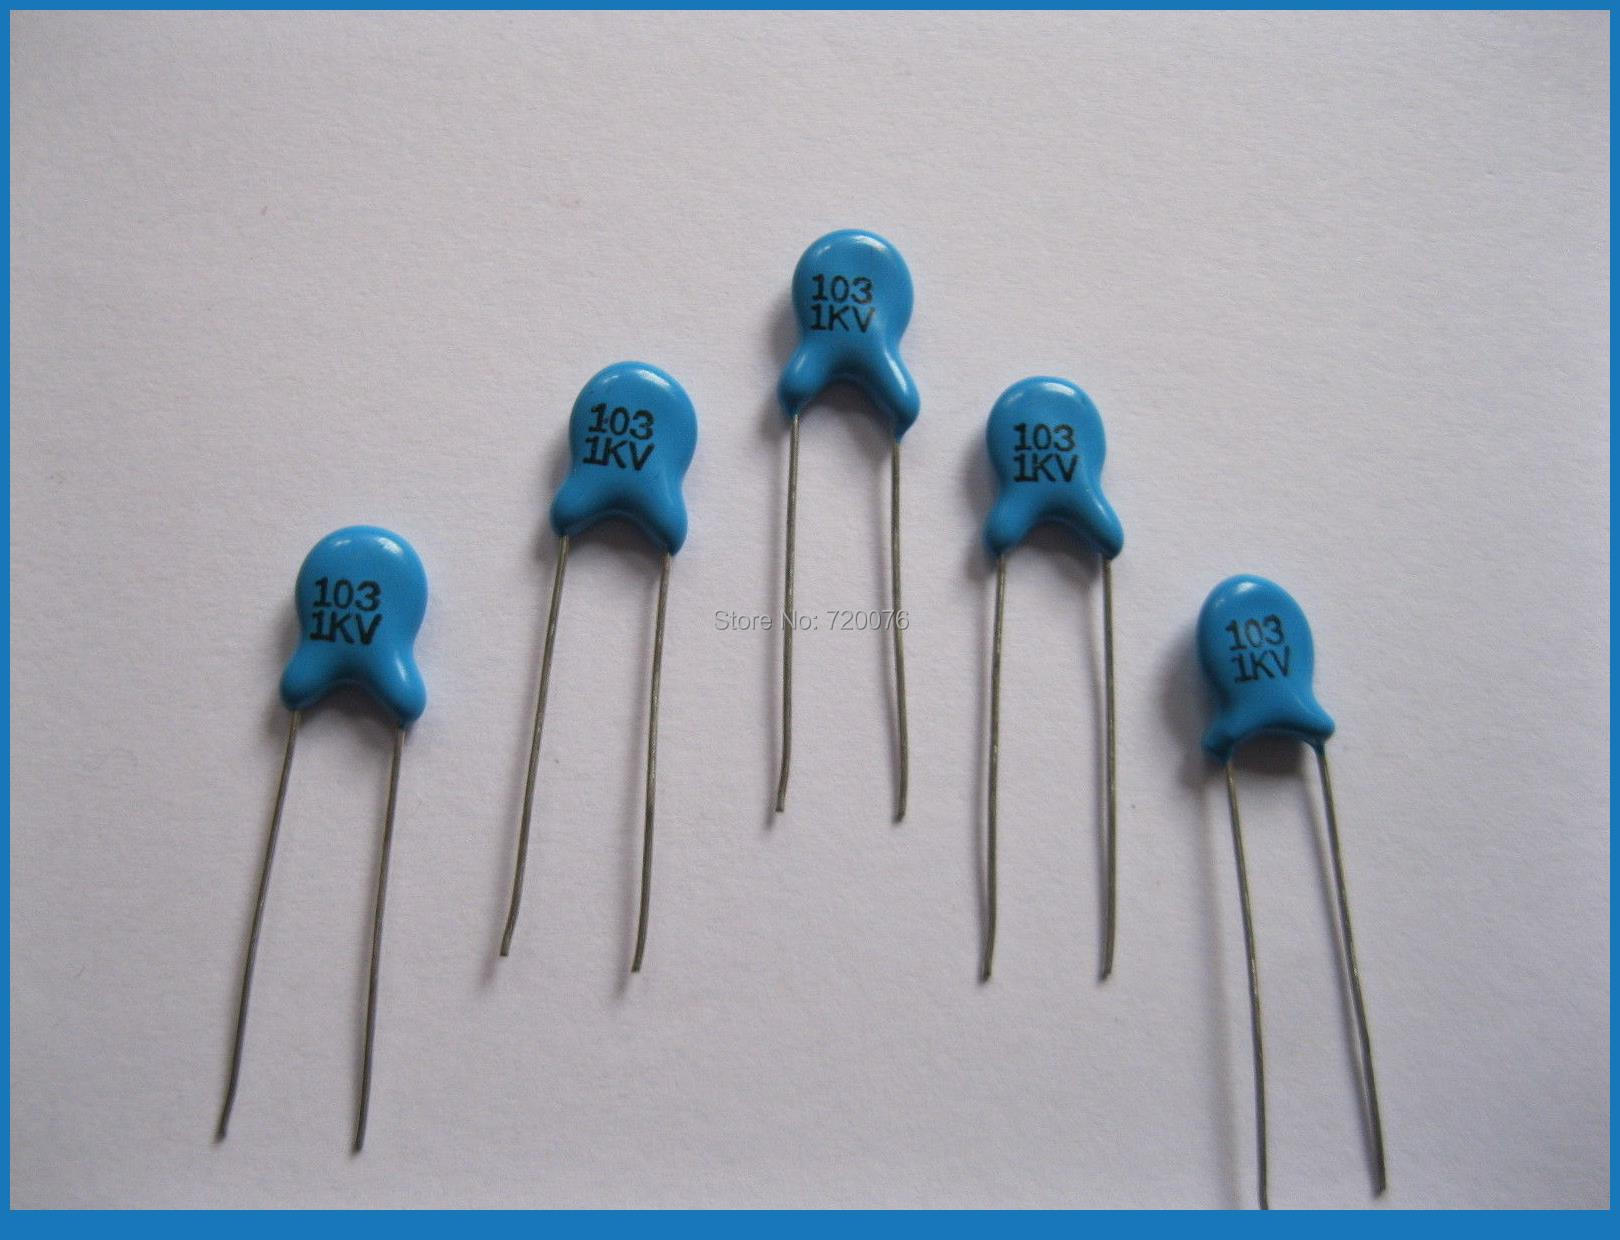 1000 pcs Ceramic Disc Capacitors 1000V 1KV 103pF 0.01uF 2 pin disc ceramic capacitor set blue 6 pcs